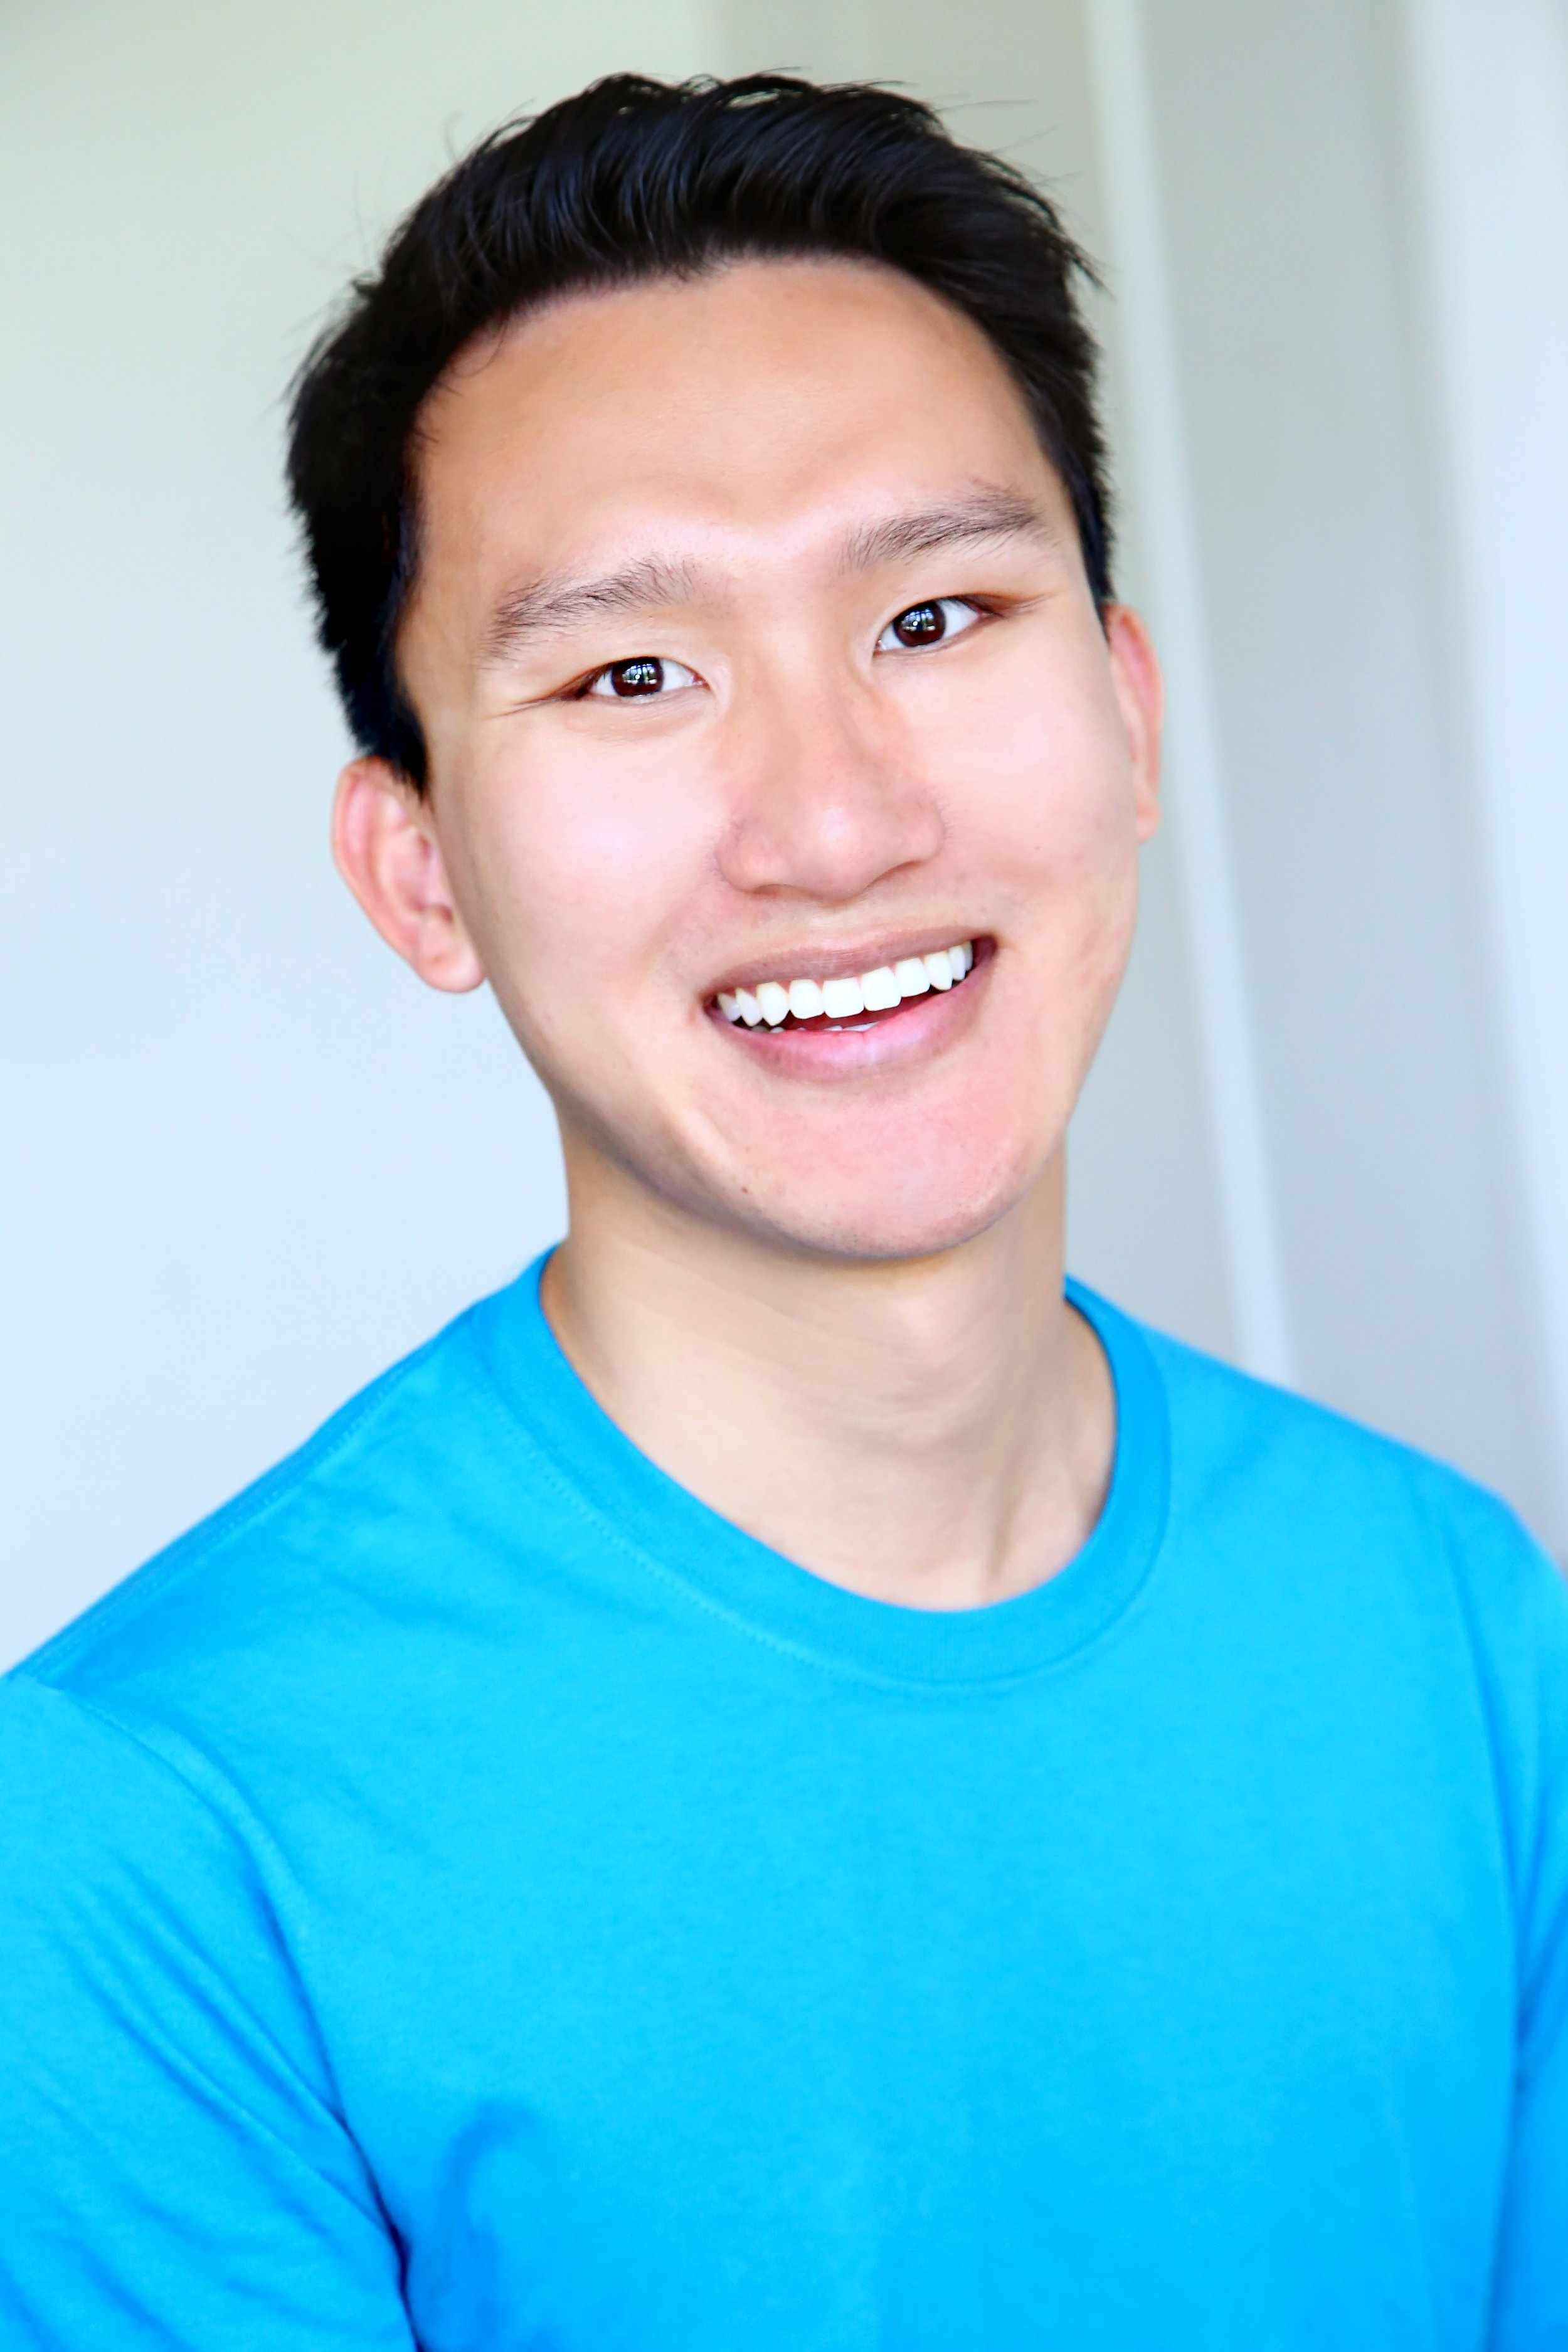 Stanley Dang - Stanley is excited to work with Seattle Playwrights Salon. Previously you might have seen him as Ensemble in The White Snake (ReAct Theatre); Kevin in 10 Acrobats in an Amazing Leap of Faith (UW Theatre Society); Ensemble in Teh Internet is Serious Business (Washington Ensemble Theatre). He would like to thank all those involved with the production and y'all for coming. He hopes you will enjoy the show and continue to see him in future works.